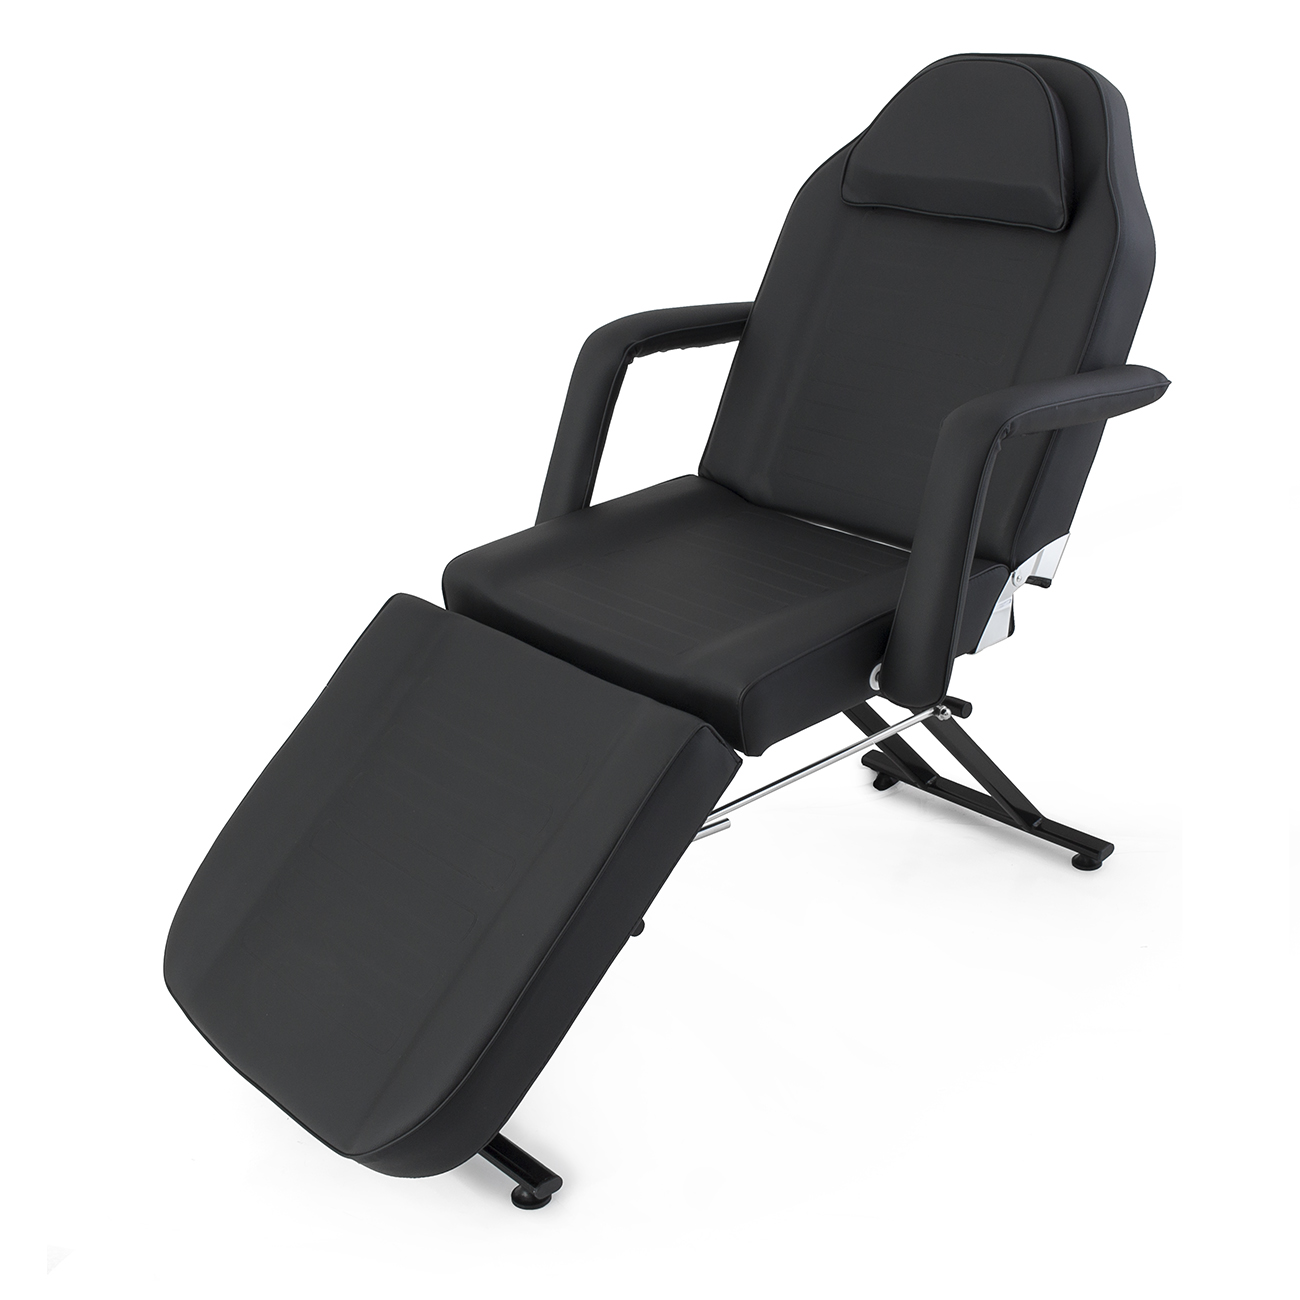 Adjustable massage bed chair spa facial tattoo beauty for 2 chairs tattoo